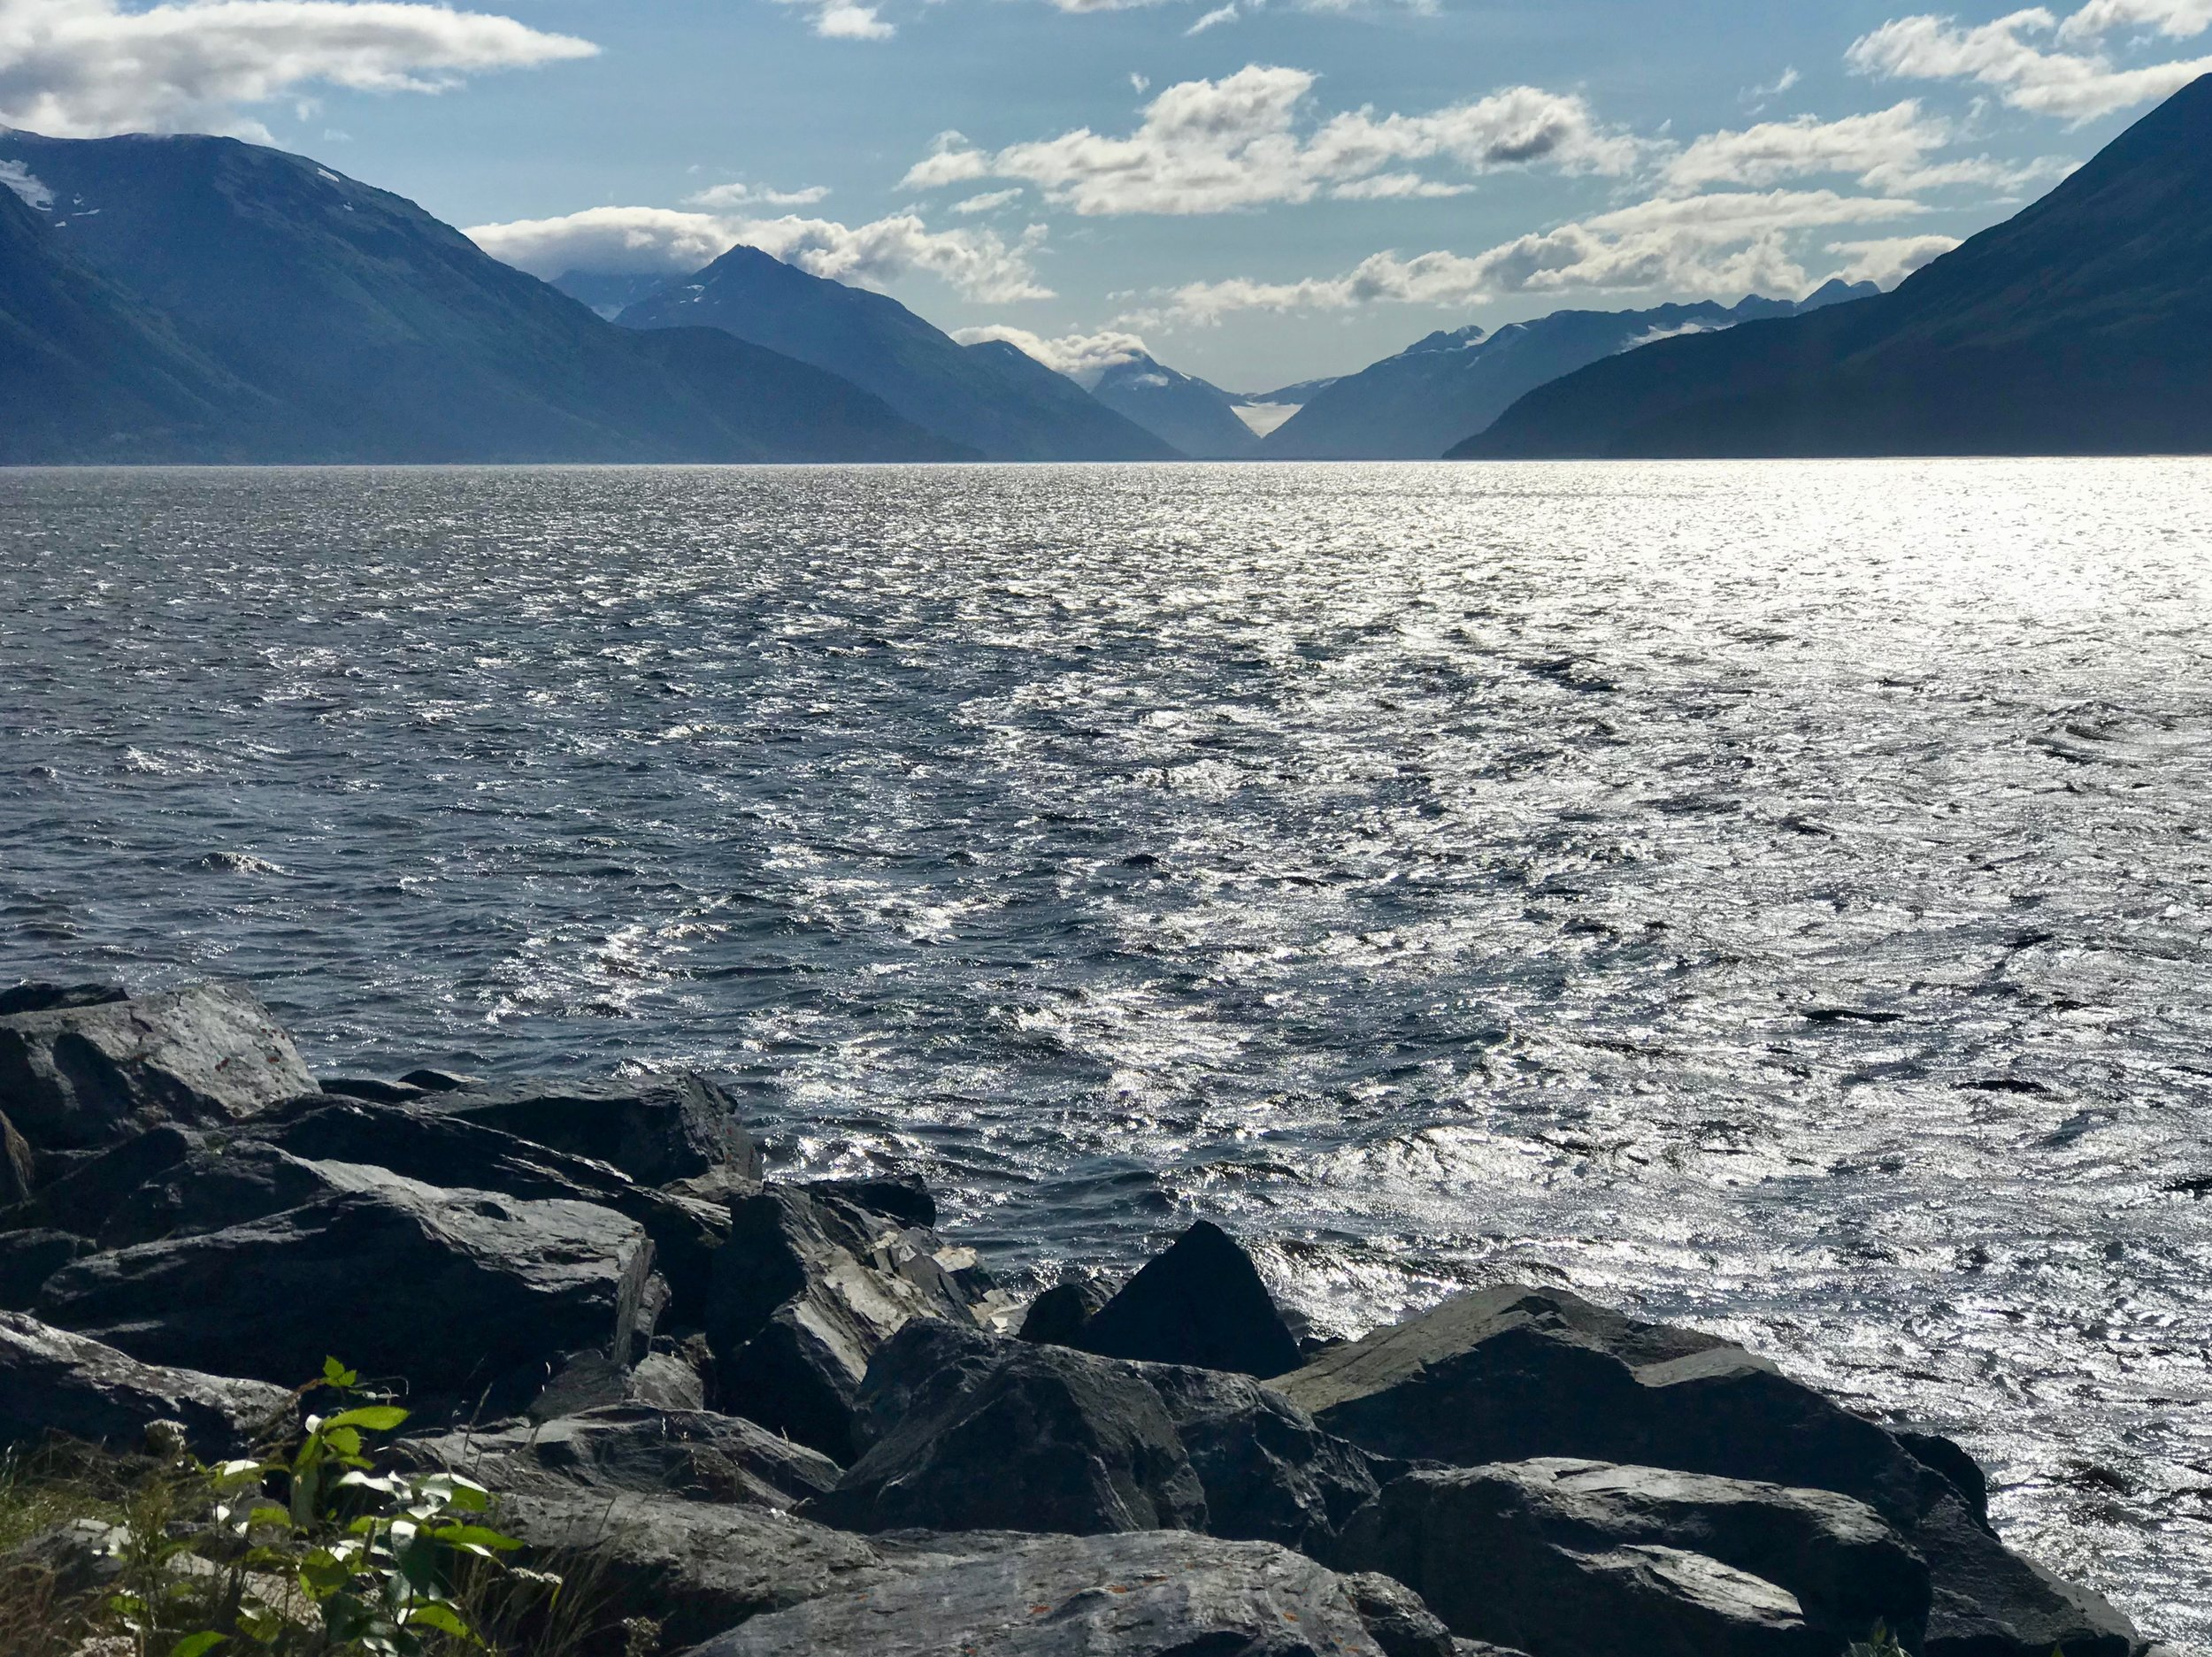 Alaska's Seward Highway hugs the coast of the Turnagain Arm, home of beluga whales, Dall sheep and glaciers.